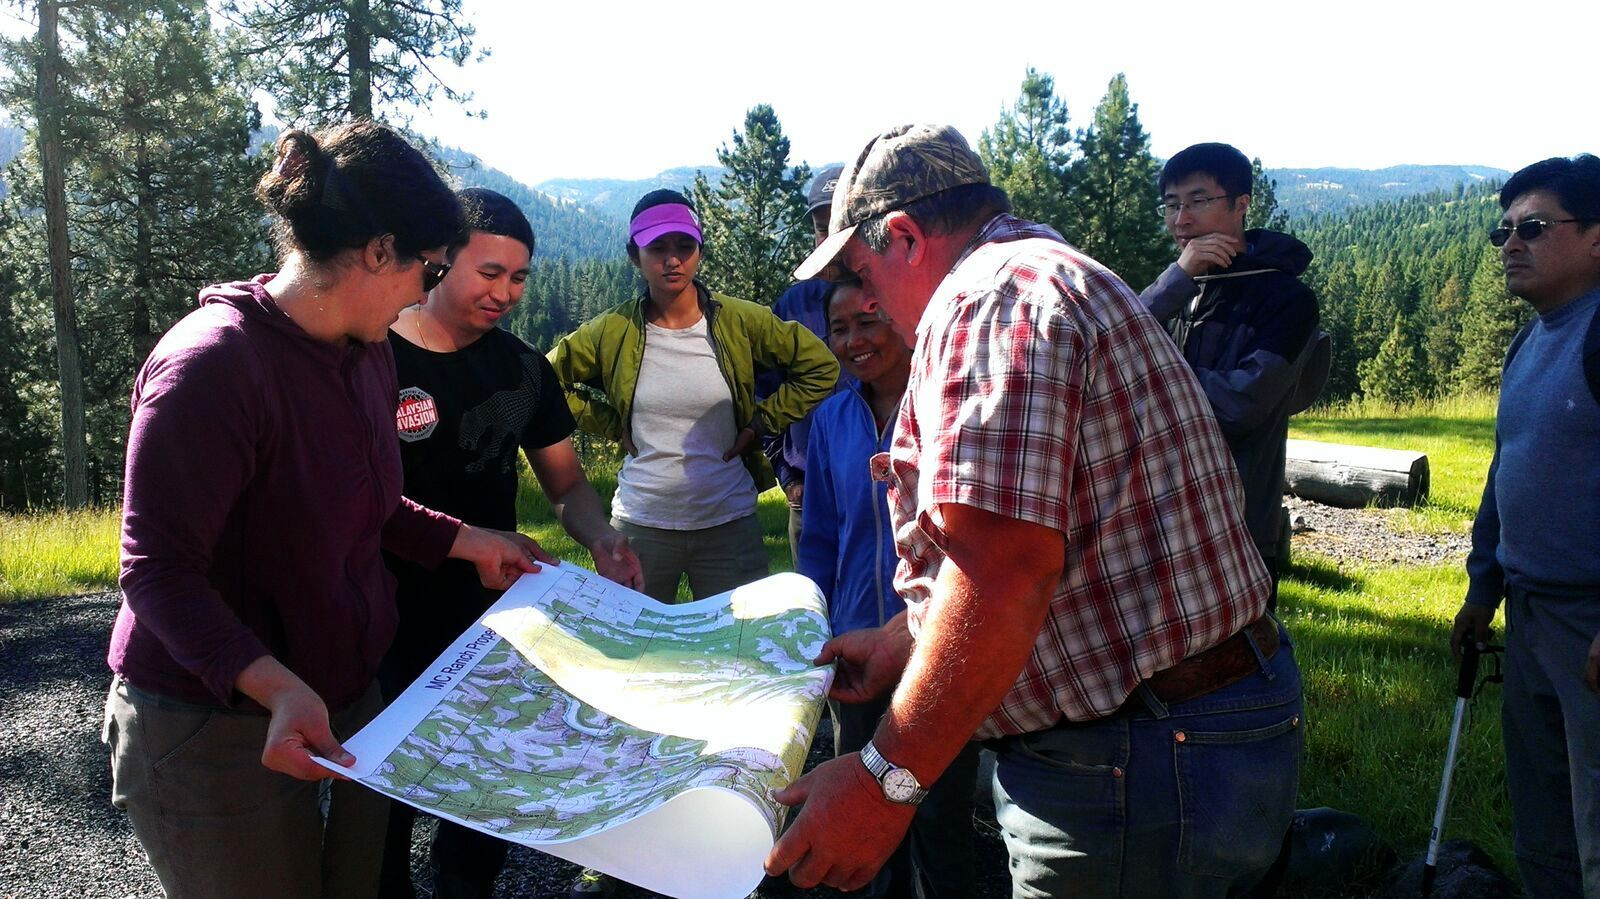 International Fellows examine a map on a trail